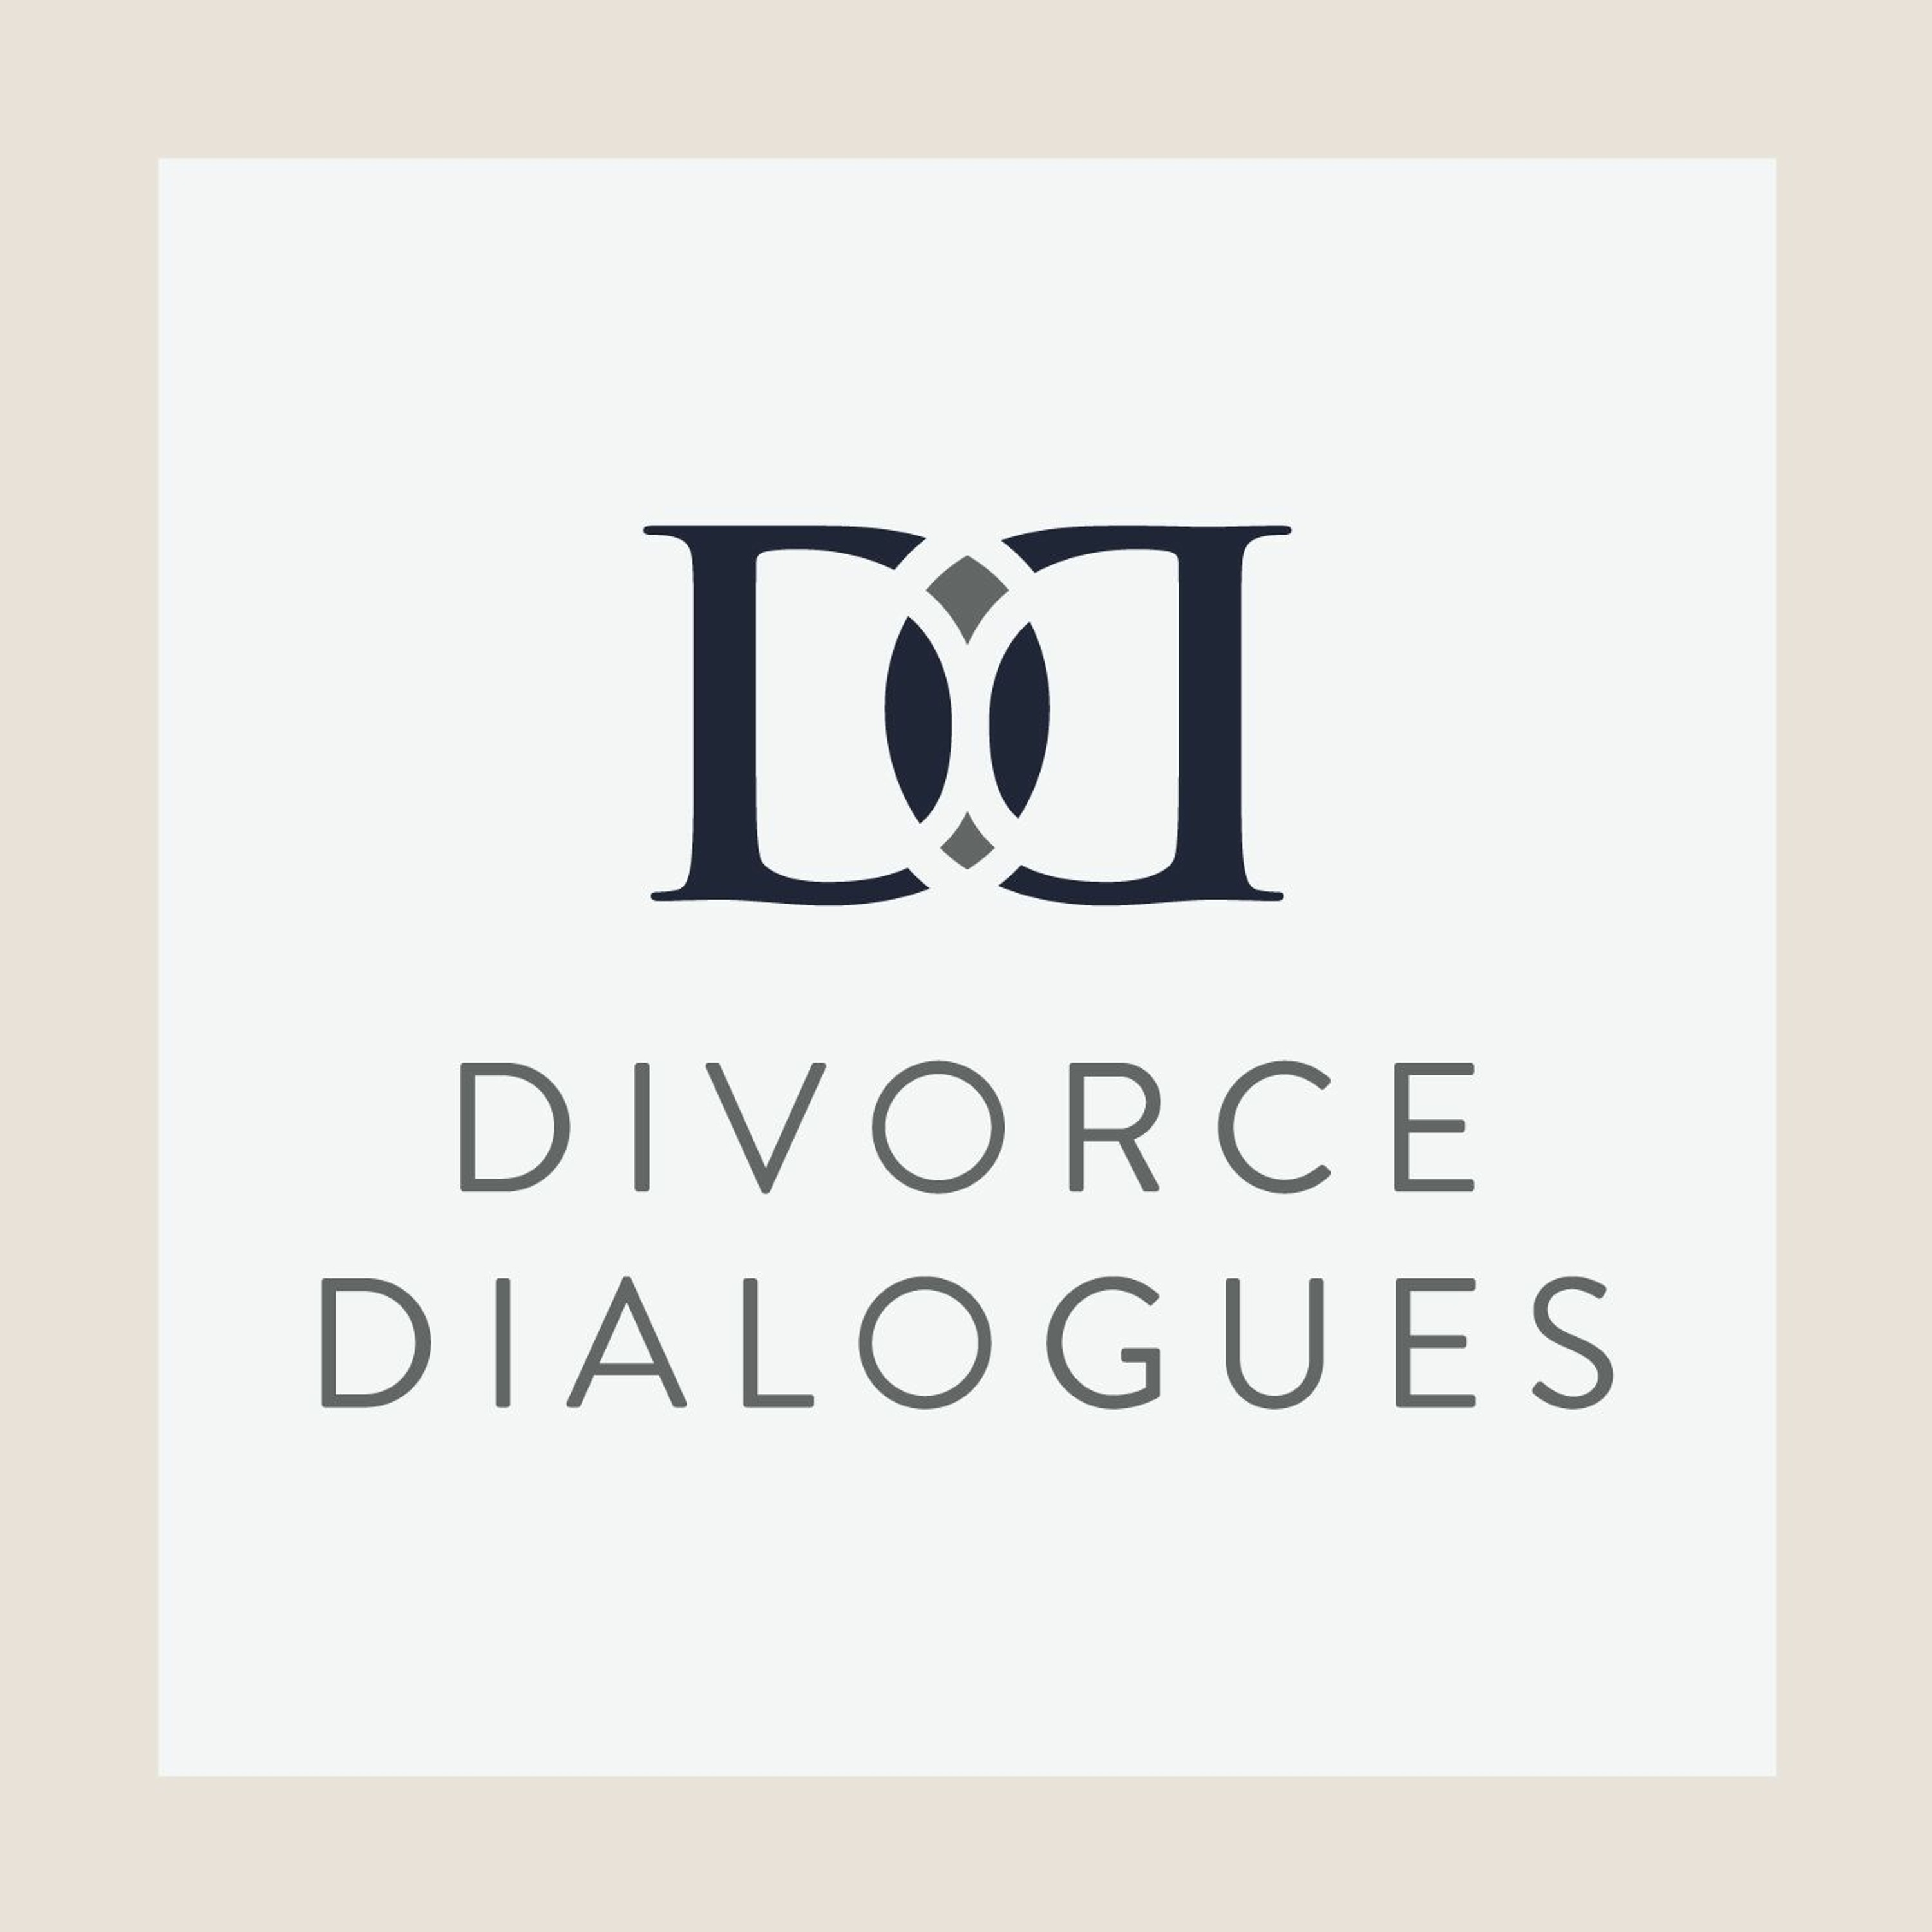 Divorce Dialogues - 'Second Saturday' and the Role of a Divorce Financial Planner with Andy Samalin